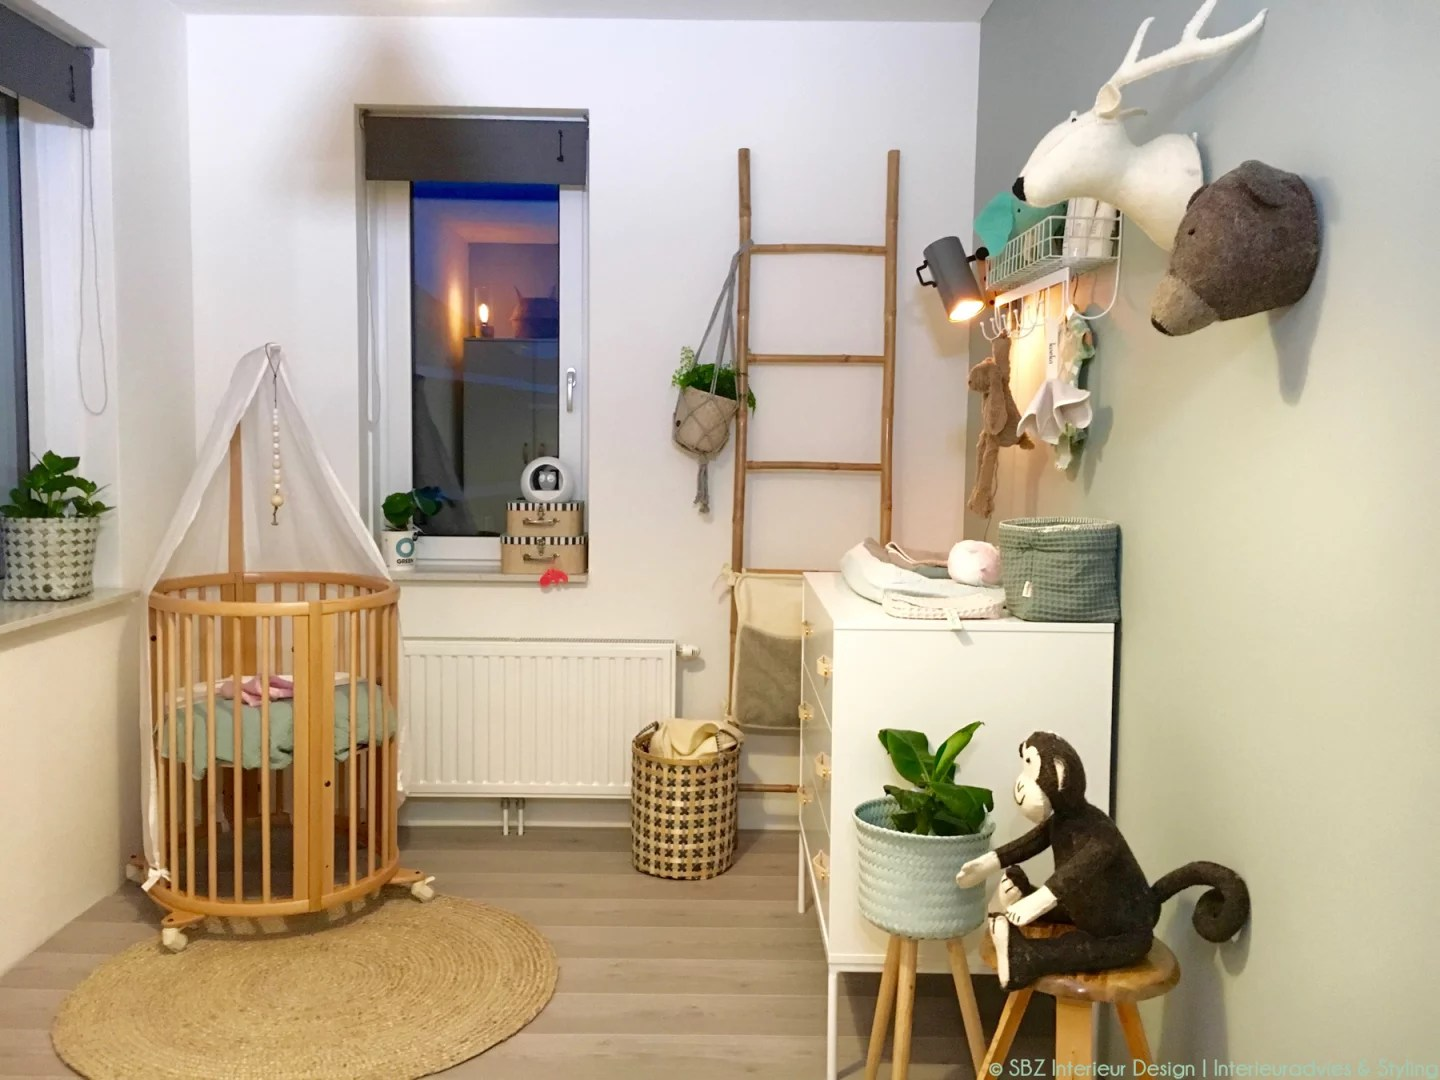 Interieur Design Bedrijf Interieur And Kids Babykamer Styling Tips Video Babykamer